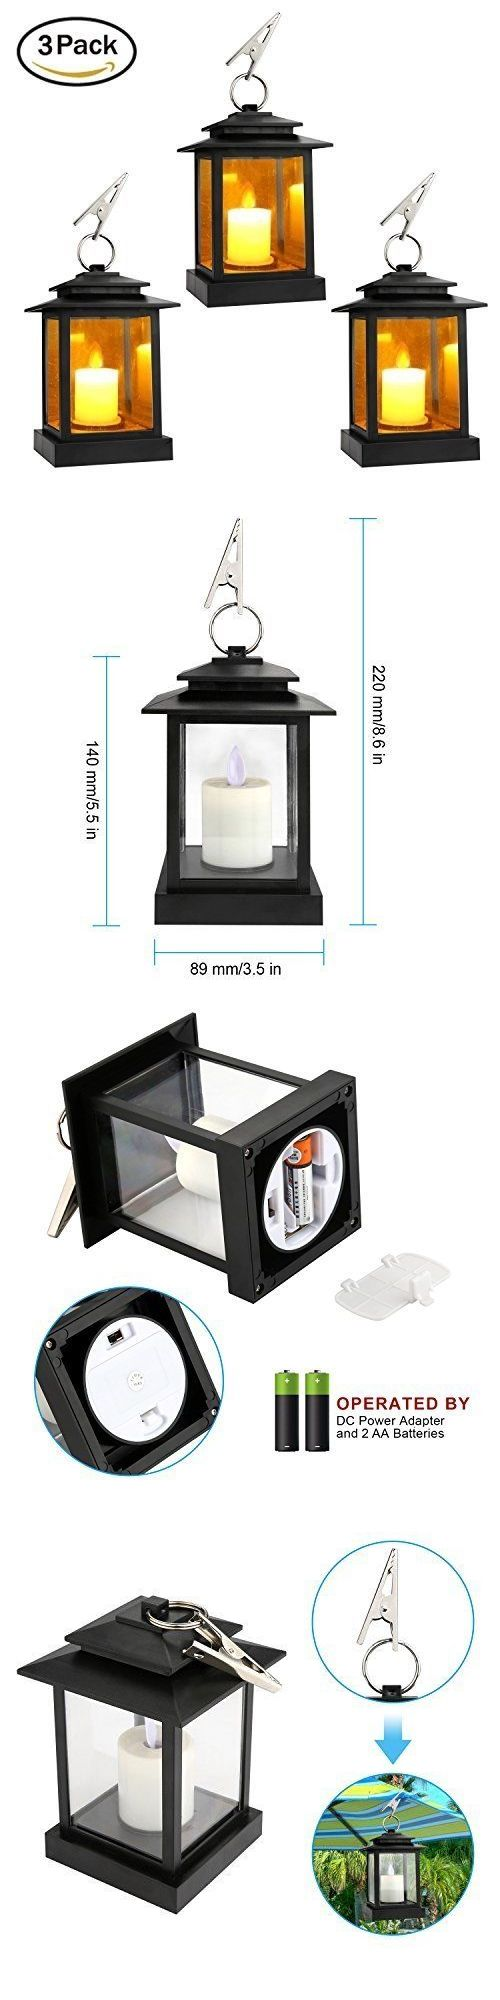 Outdoor D cor Candle Lanterns 183392: Decor Candle Lanterns Outdoor-Indoor Set ?F 3 Lanterns With Led Pillar 5 Hours -> BUY IT NOW ONLY: $44.99 on eBay!